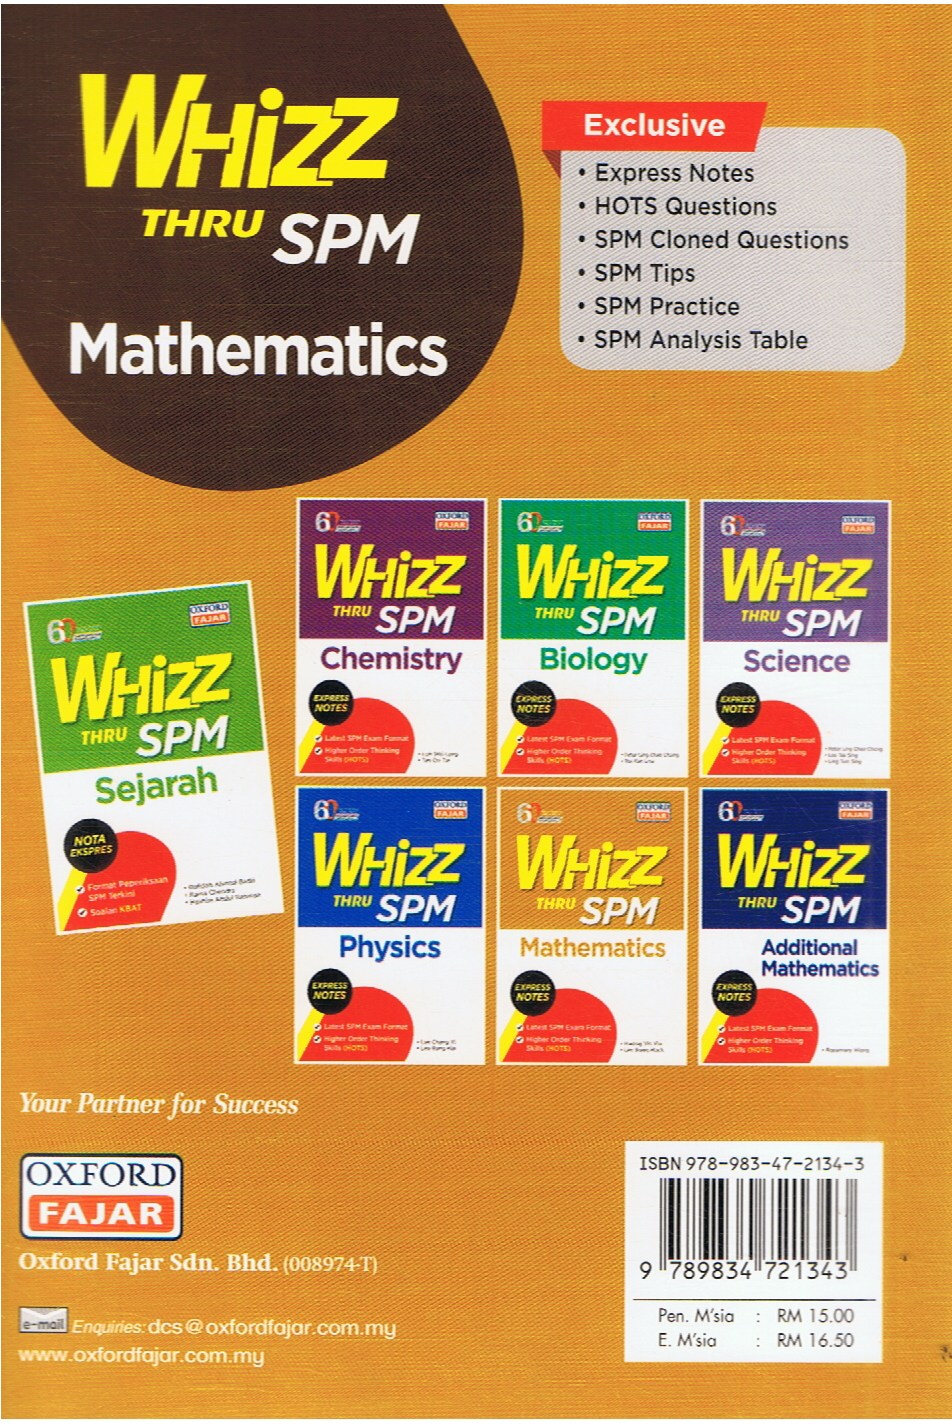 Oxford Fajar-Whizz Thru SPM Mathematics-9789834721343-BukuDBP.com